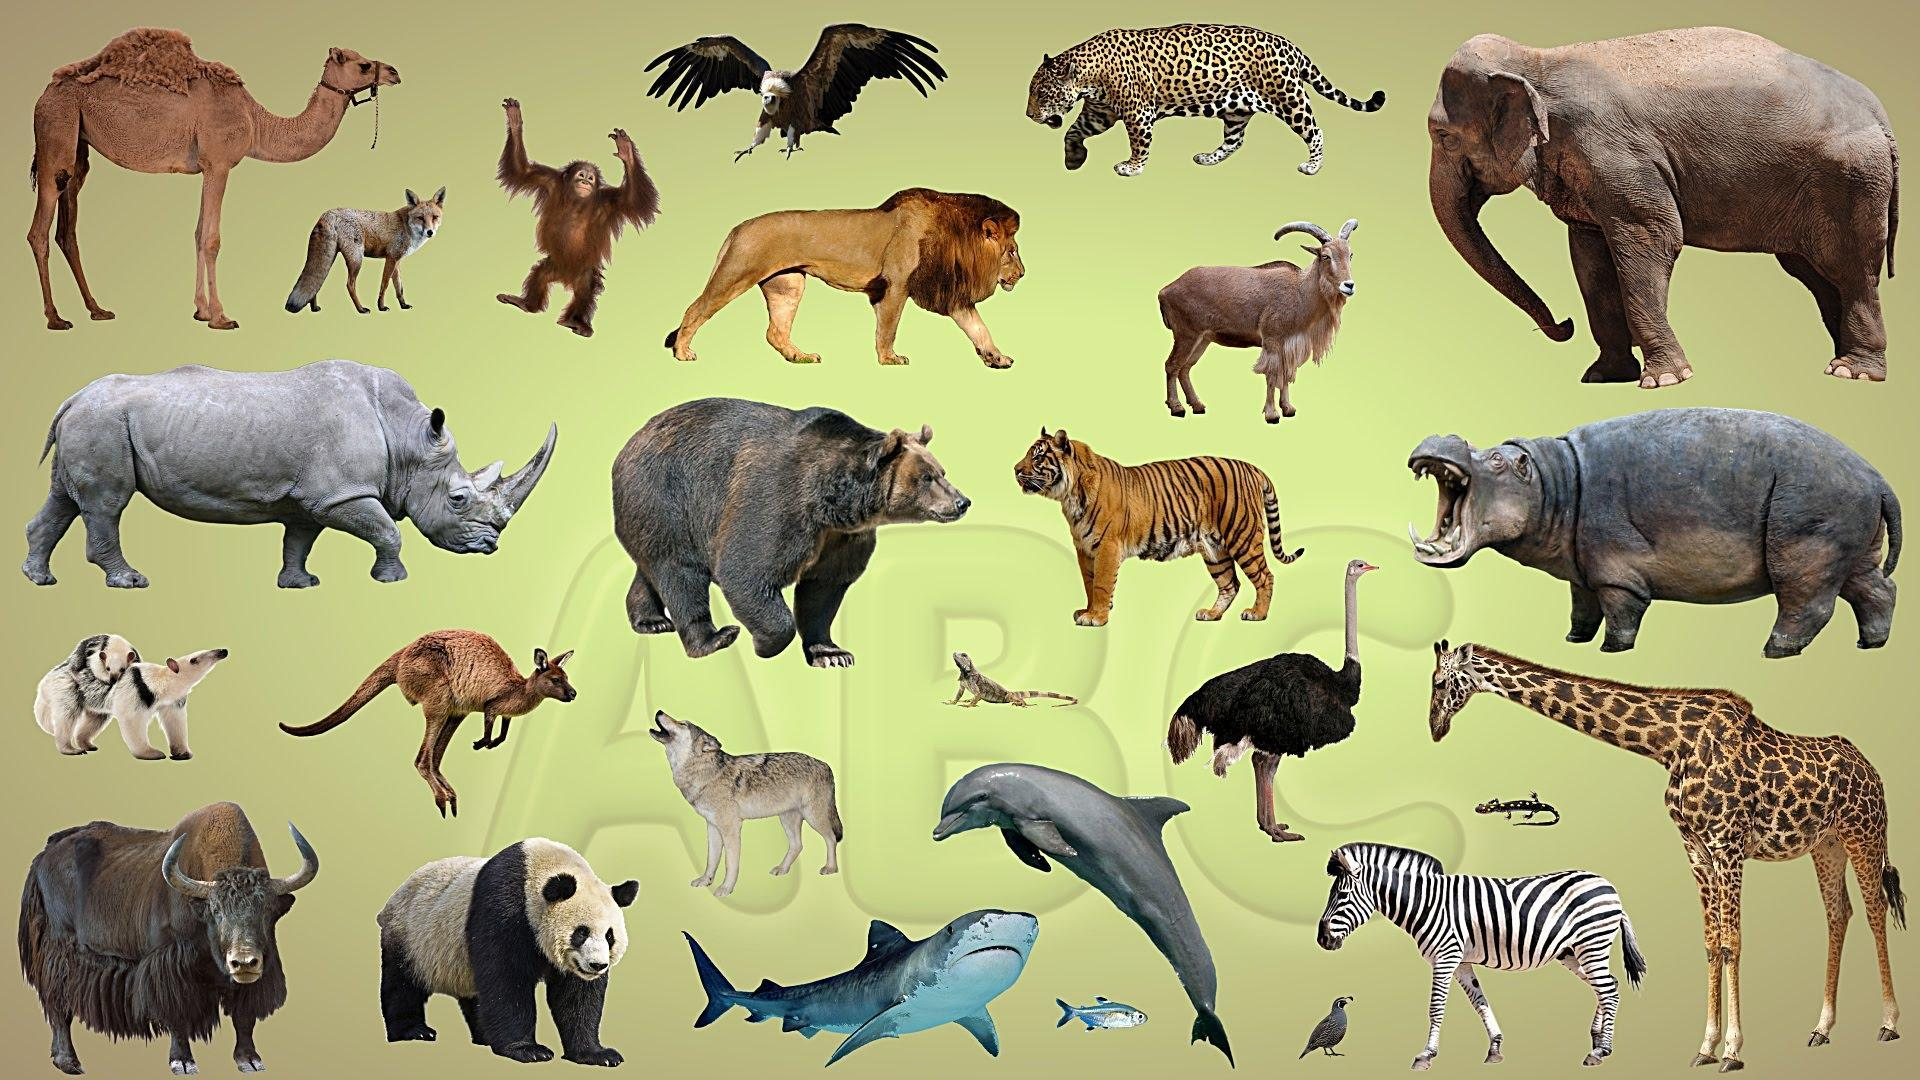 Finally, If you had to be an animal, which would it be?